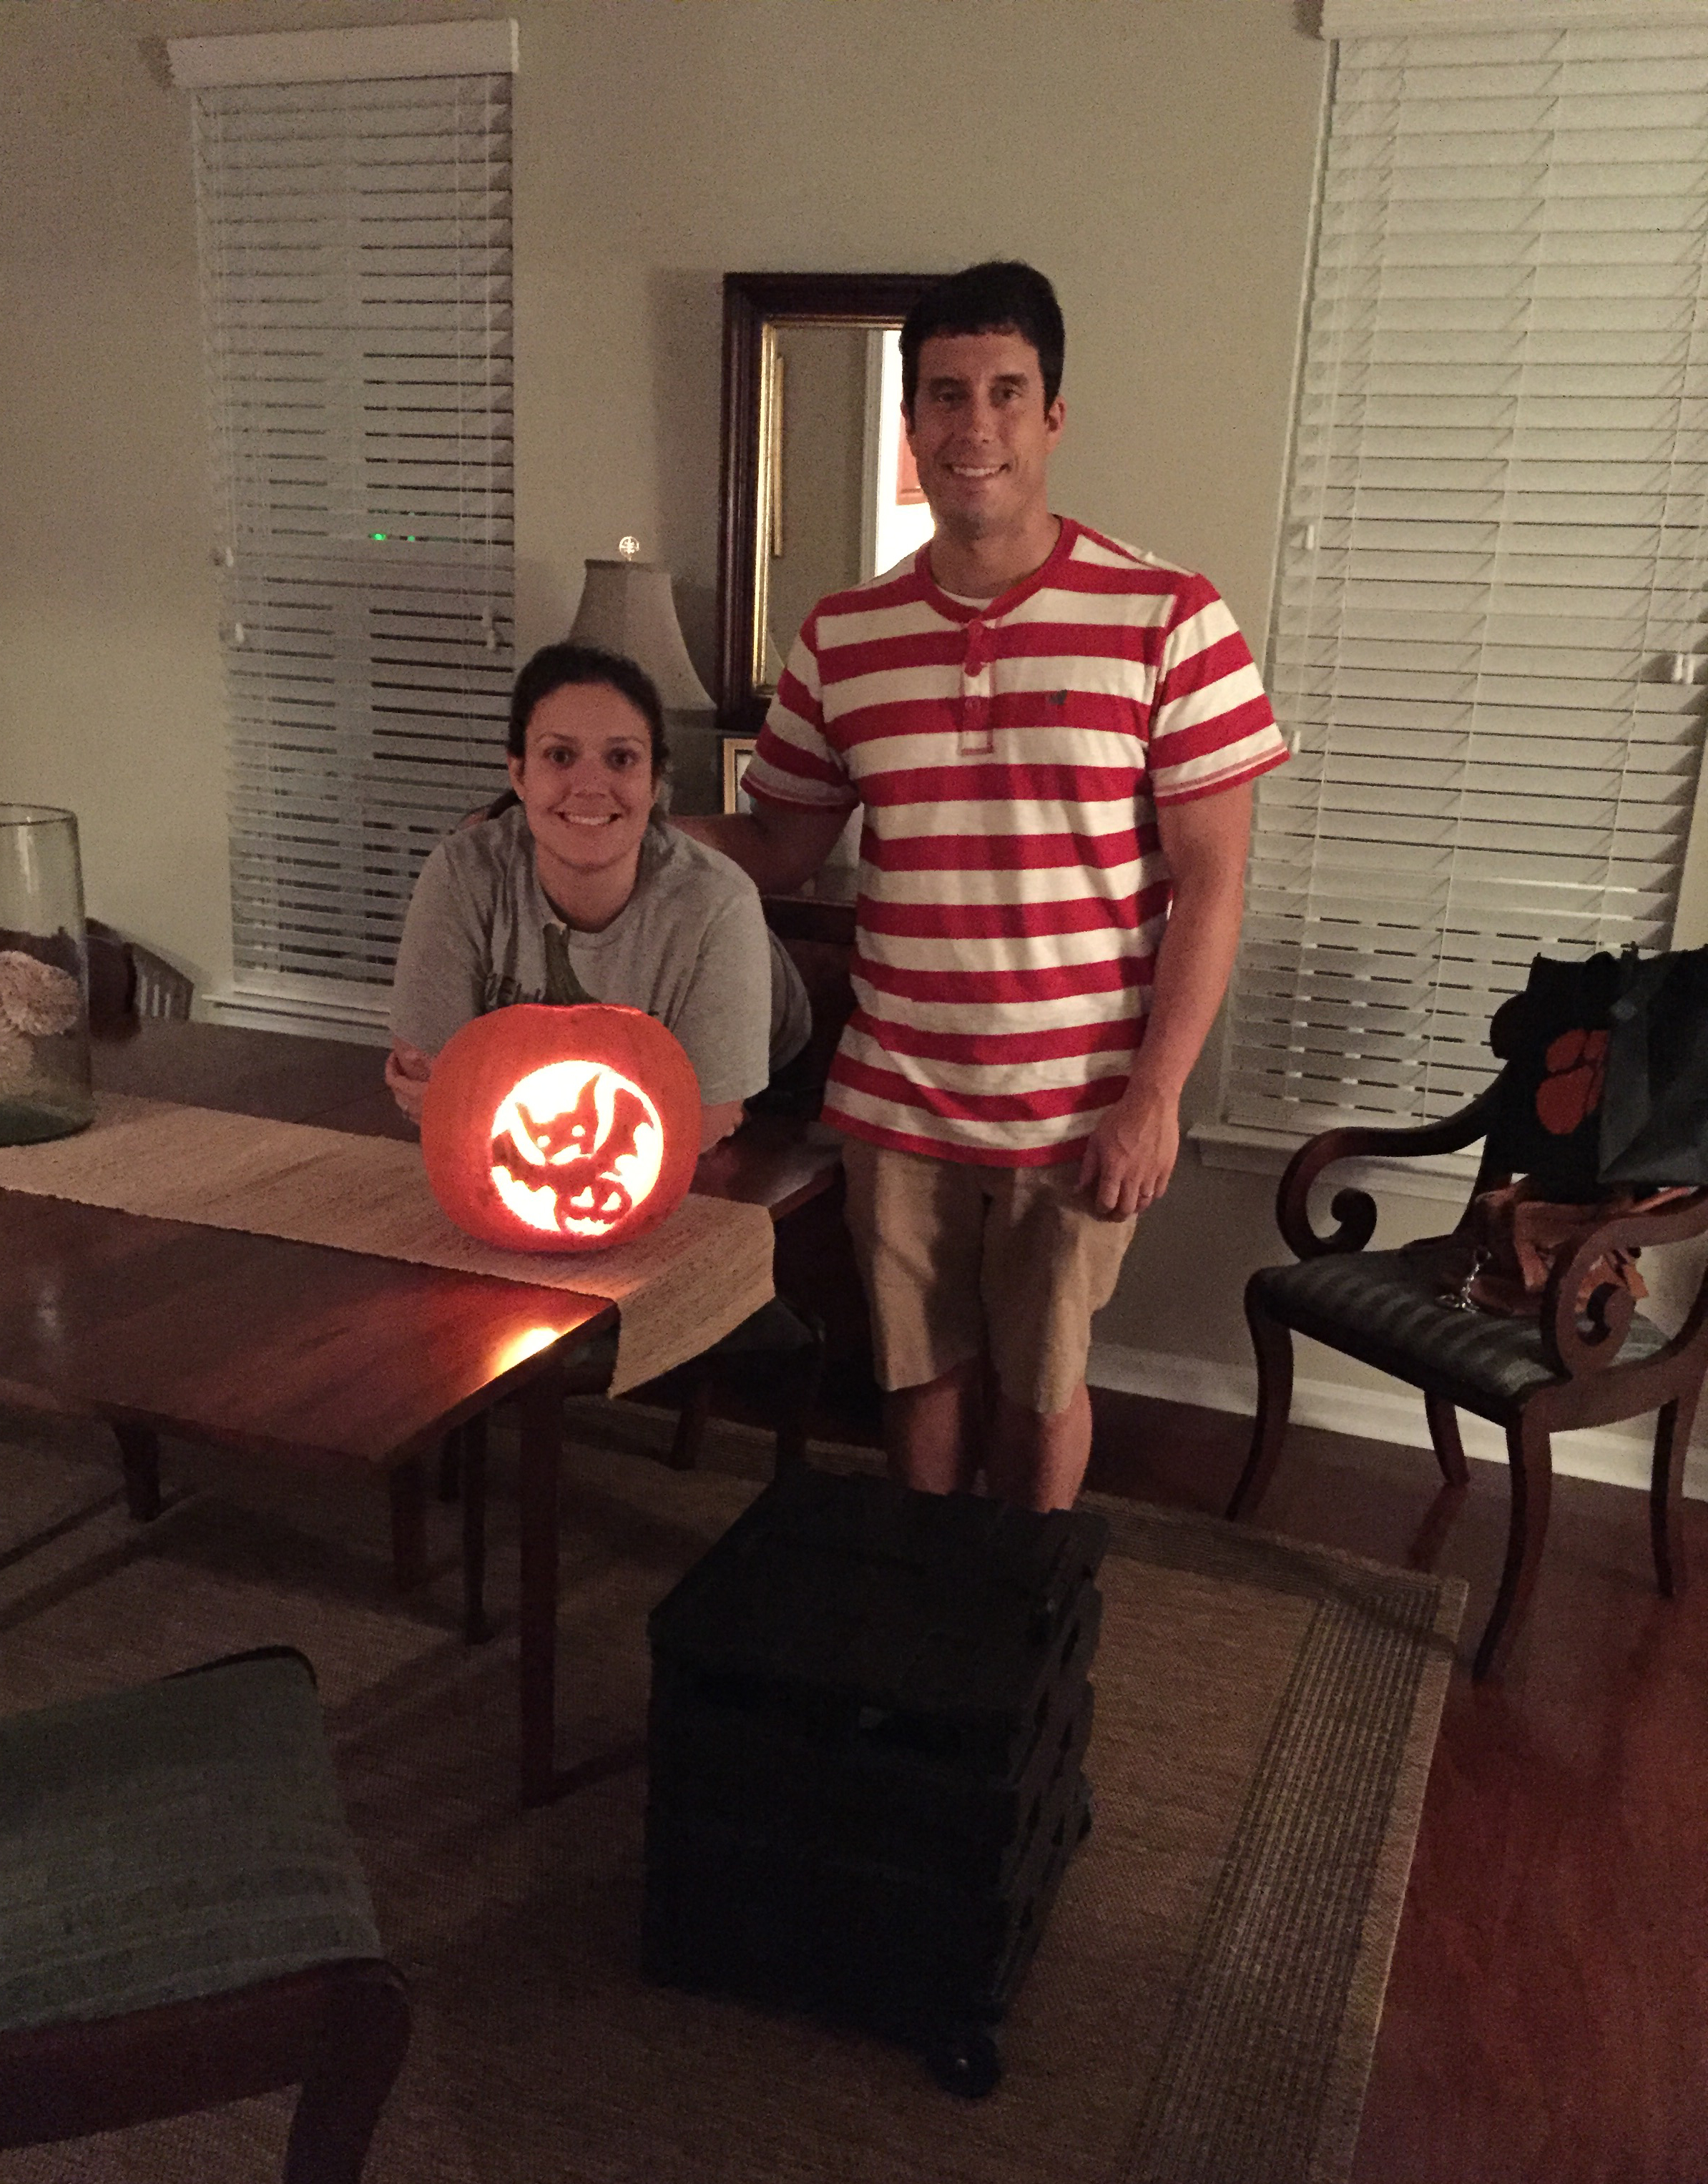 Carving pumpkins has never been one of my favorite activities. However, last night Sidney and I carved one. Read on to hear about my experience.